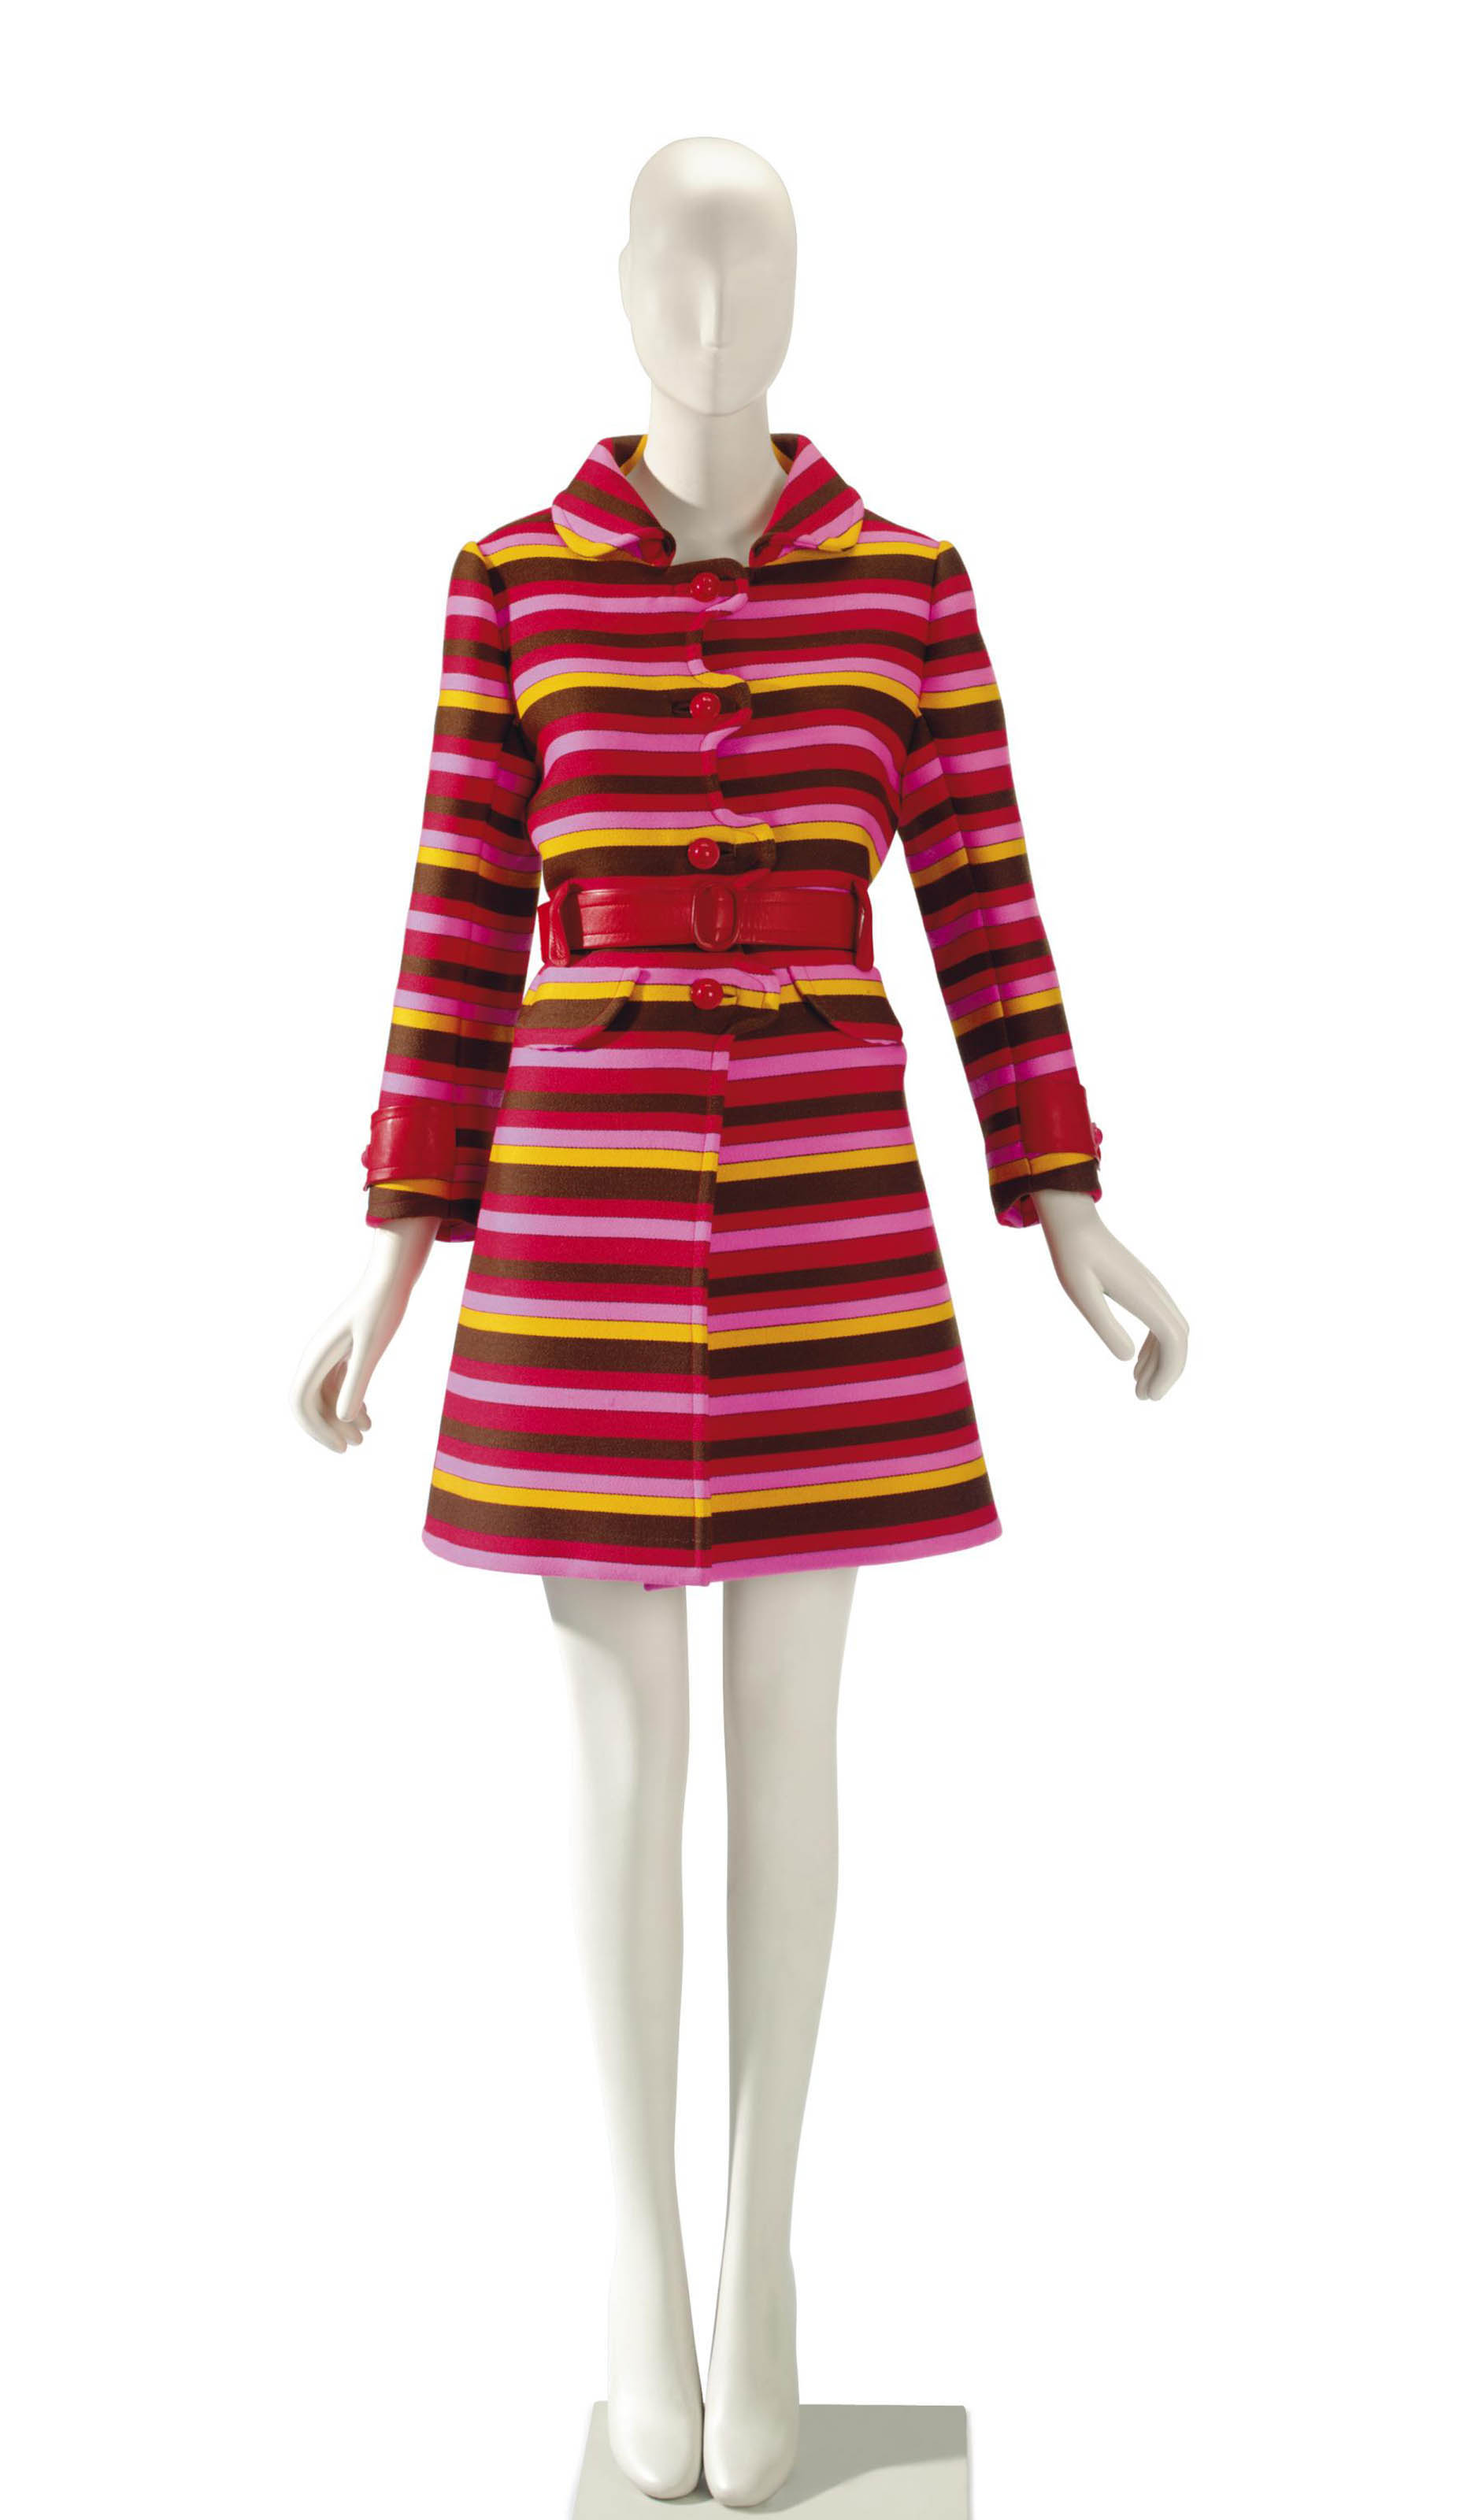 AN EMANUEL UNGARO RED, PINK, BROWN AND YELLOW STRIPED WOOL COAT